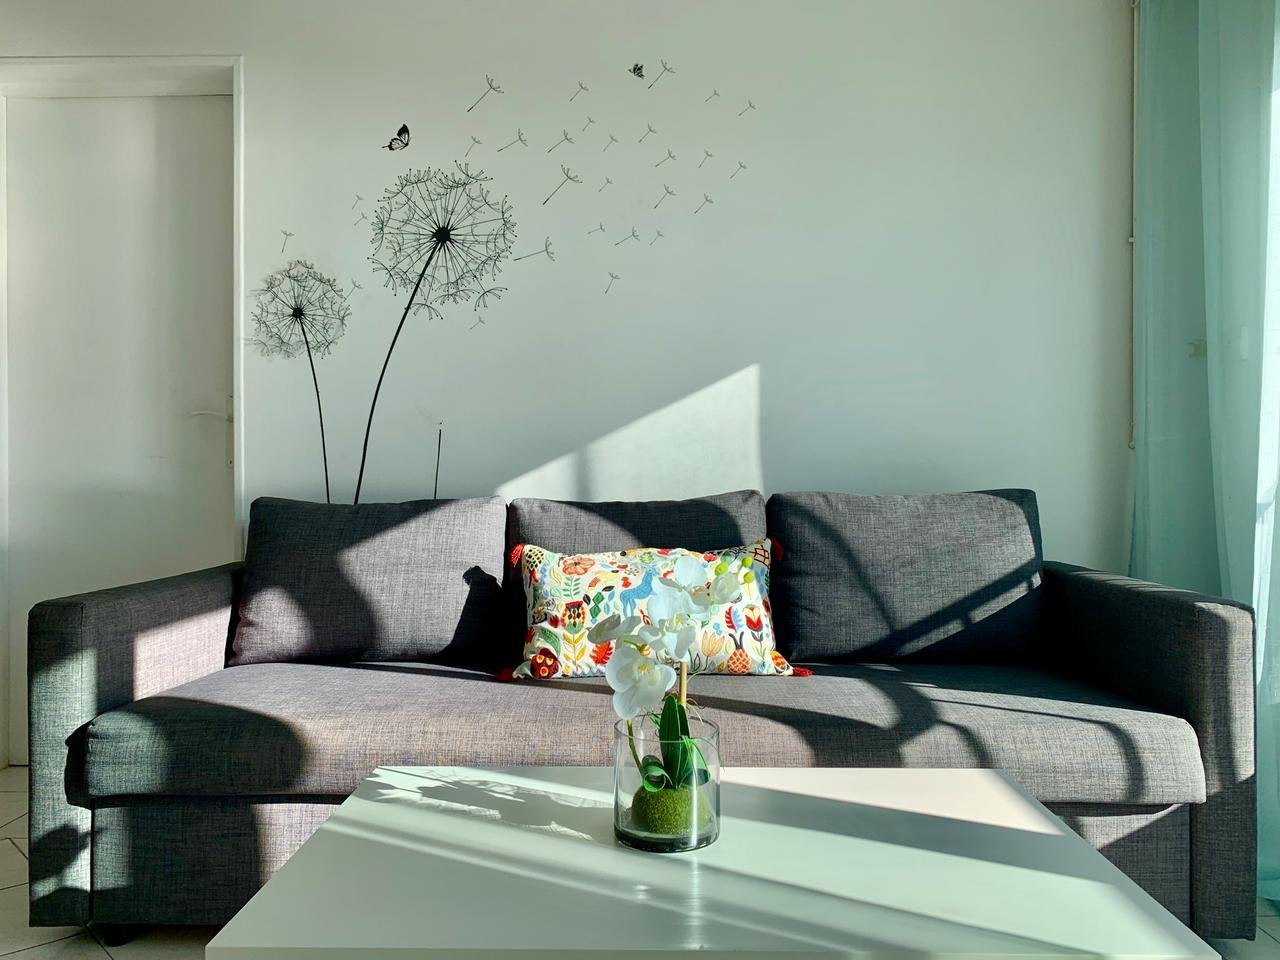 Appartement  3 Rooms 52.6m2  for sale   280000 €